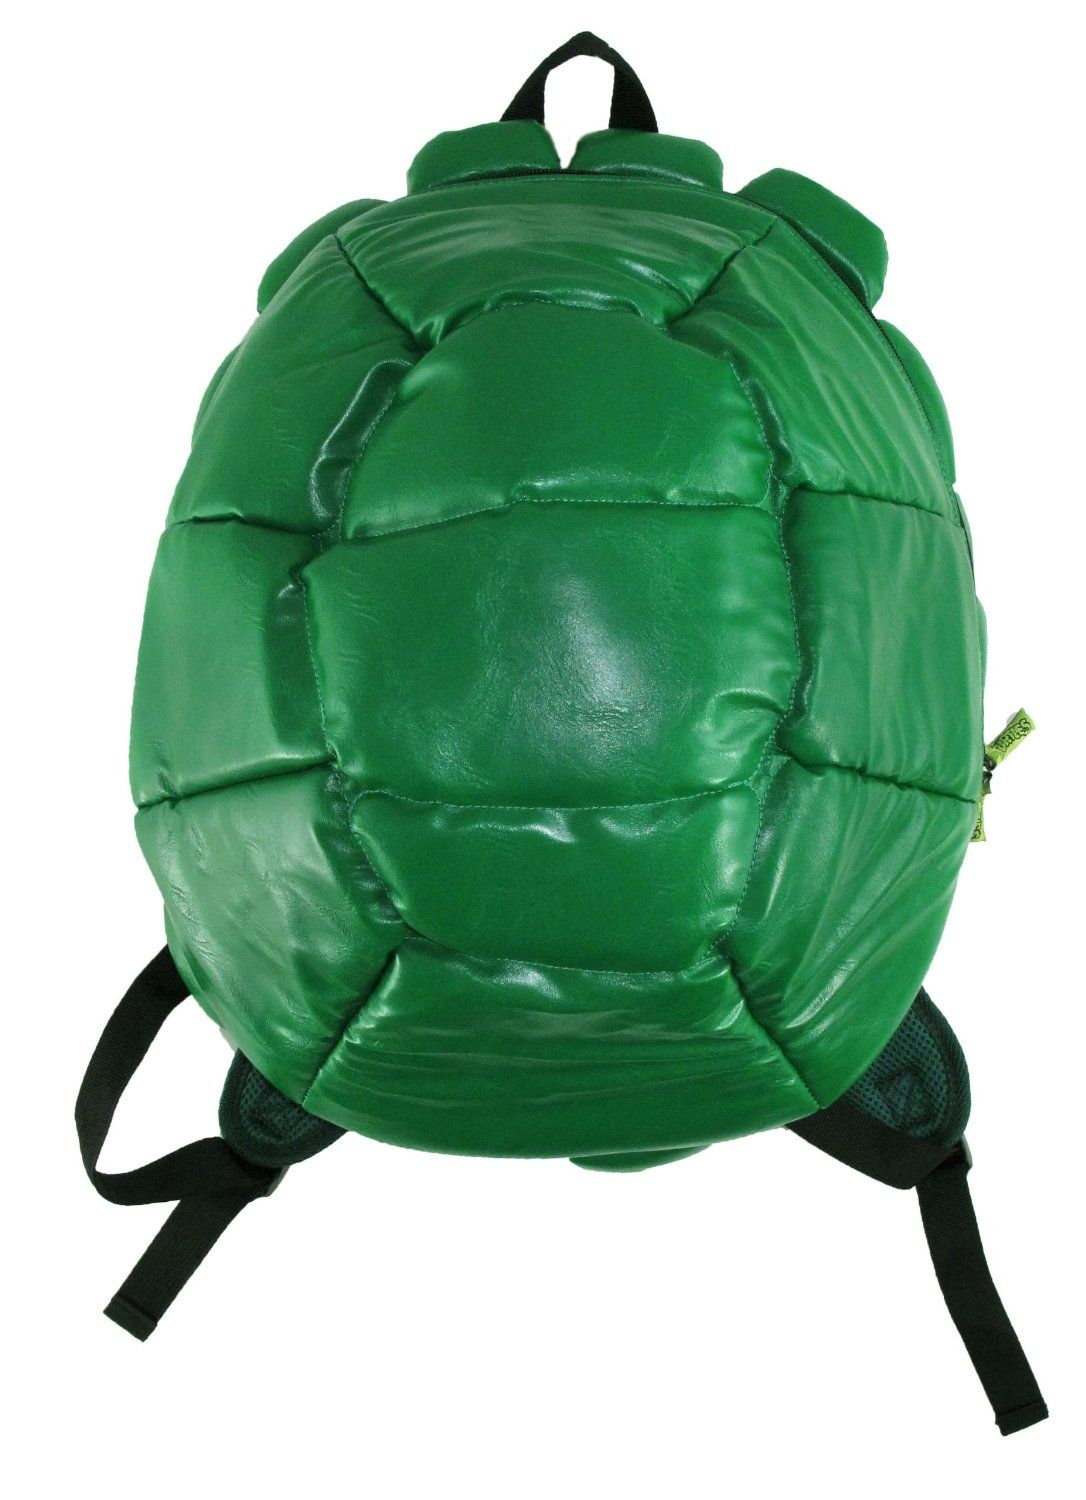 1a8c4f53aa35 Teenage Mutant Ninja Turtles Turtle Shell Backpack